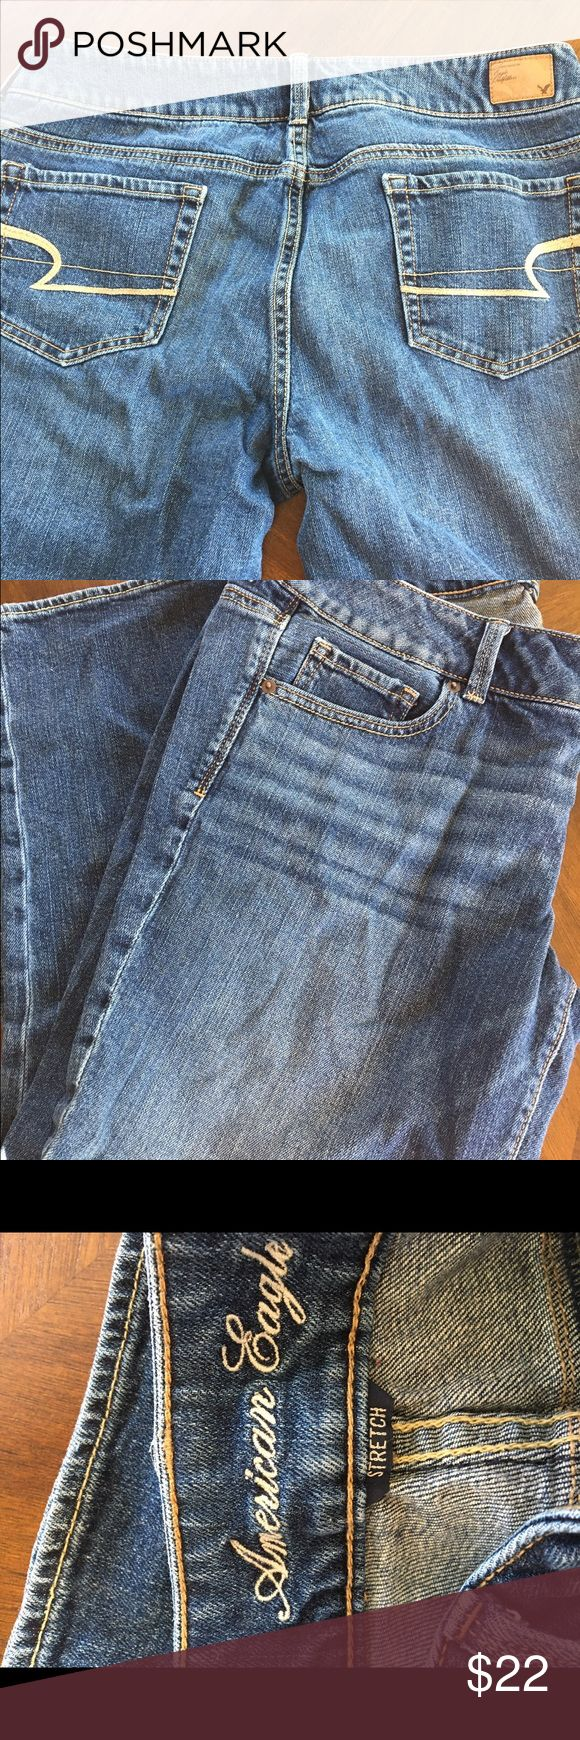 CLOSET CLEAR OUT American Eagle woman's crop jeans Woman's size 14 American Eagle jeans. Crop style. American Eagle Outfitters Jeans